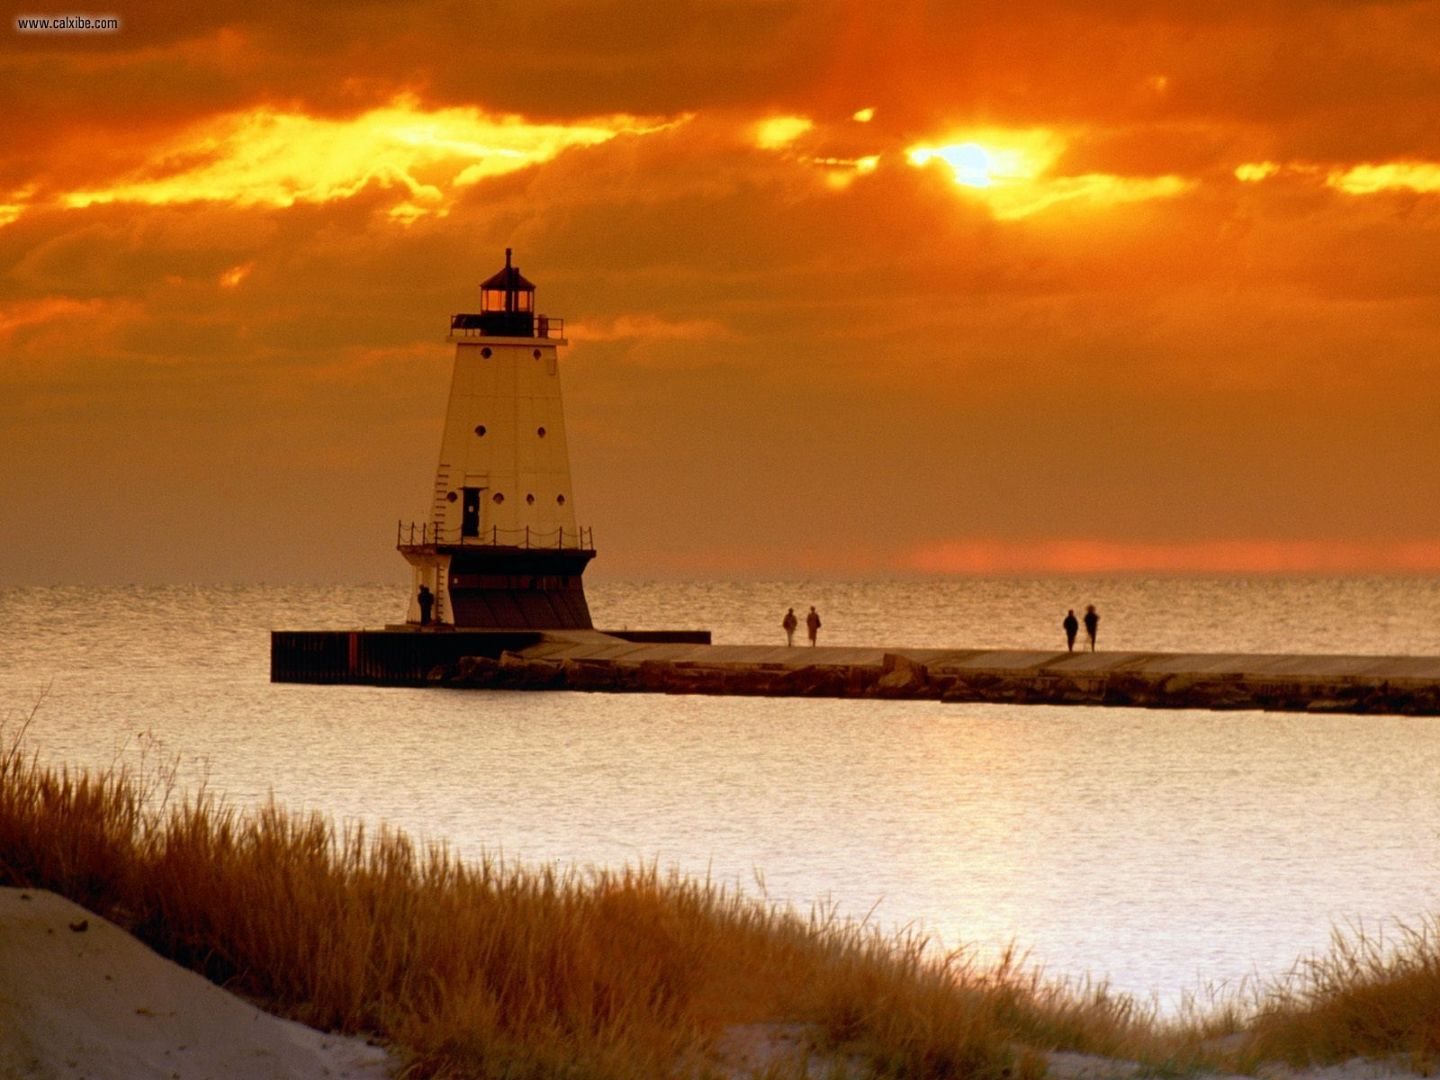 Ludington_North_Pierhead_Lighthouse_Michigan_1440x1080.jpg